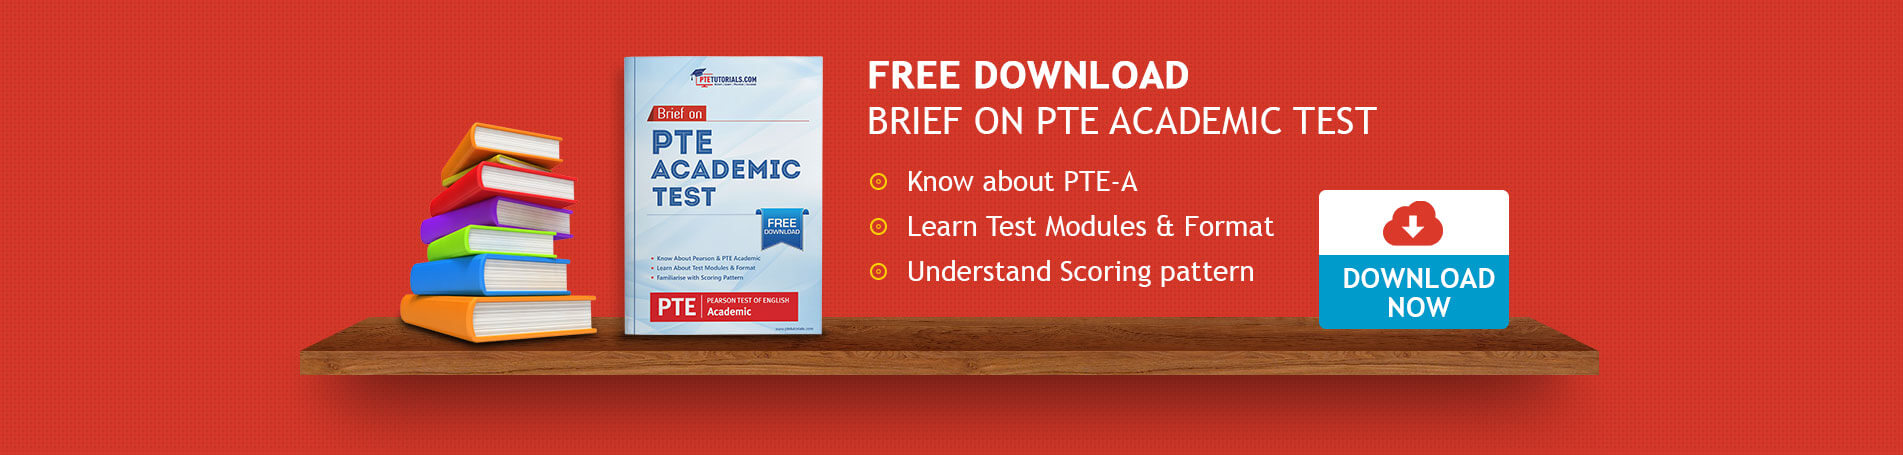 Best PTE Practice Material that make your PTE-A preparation strong!